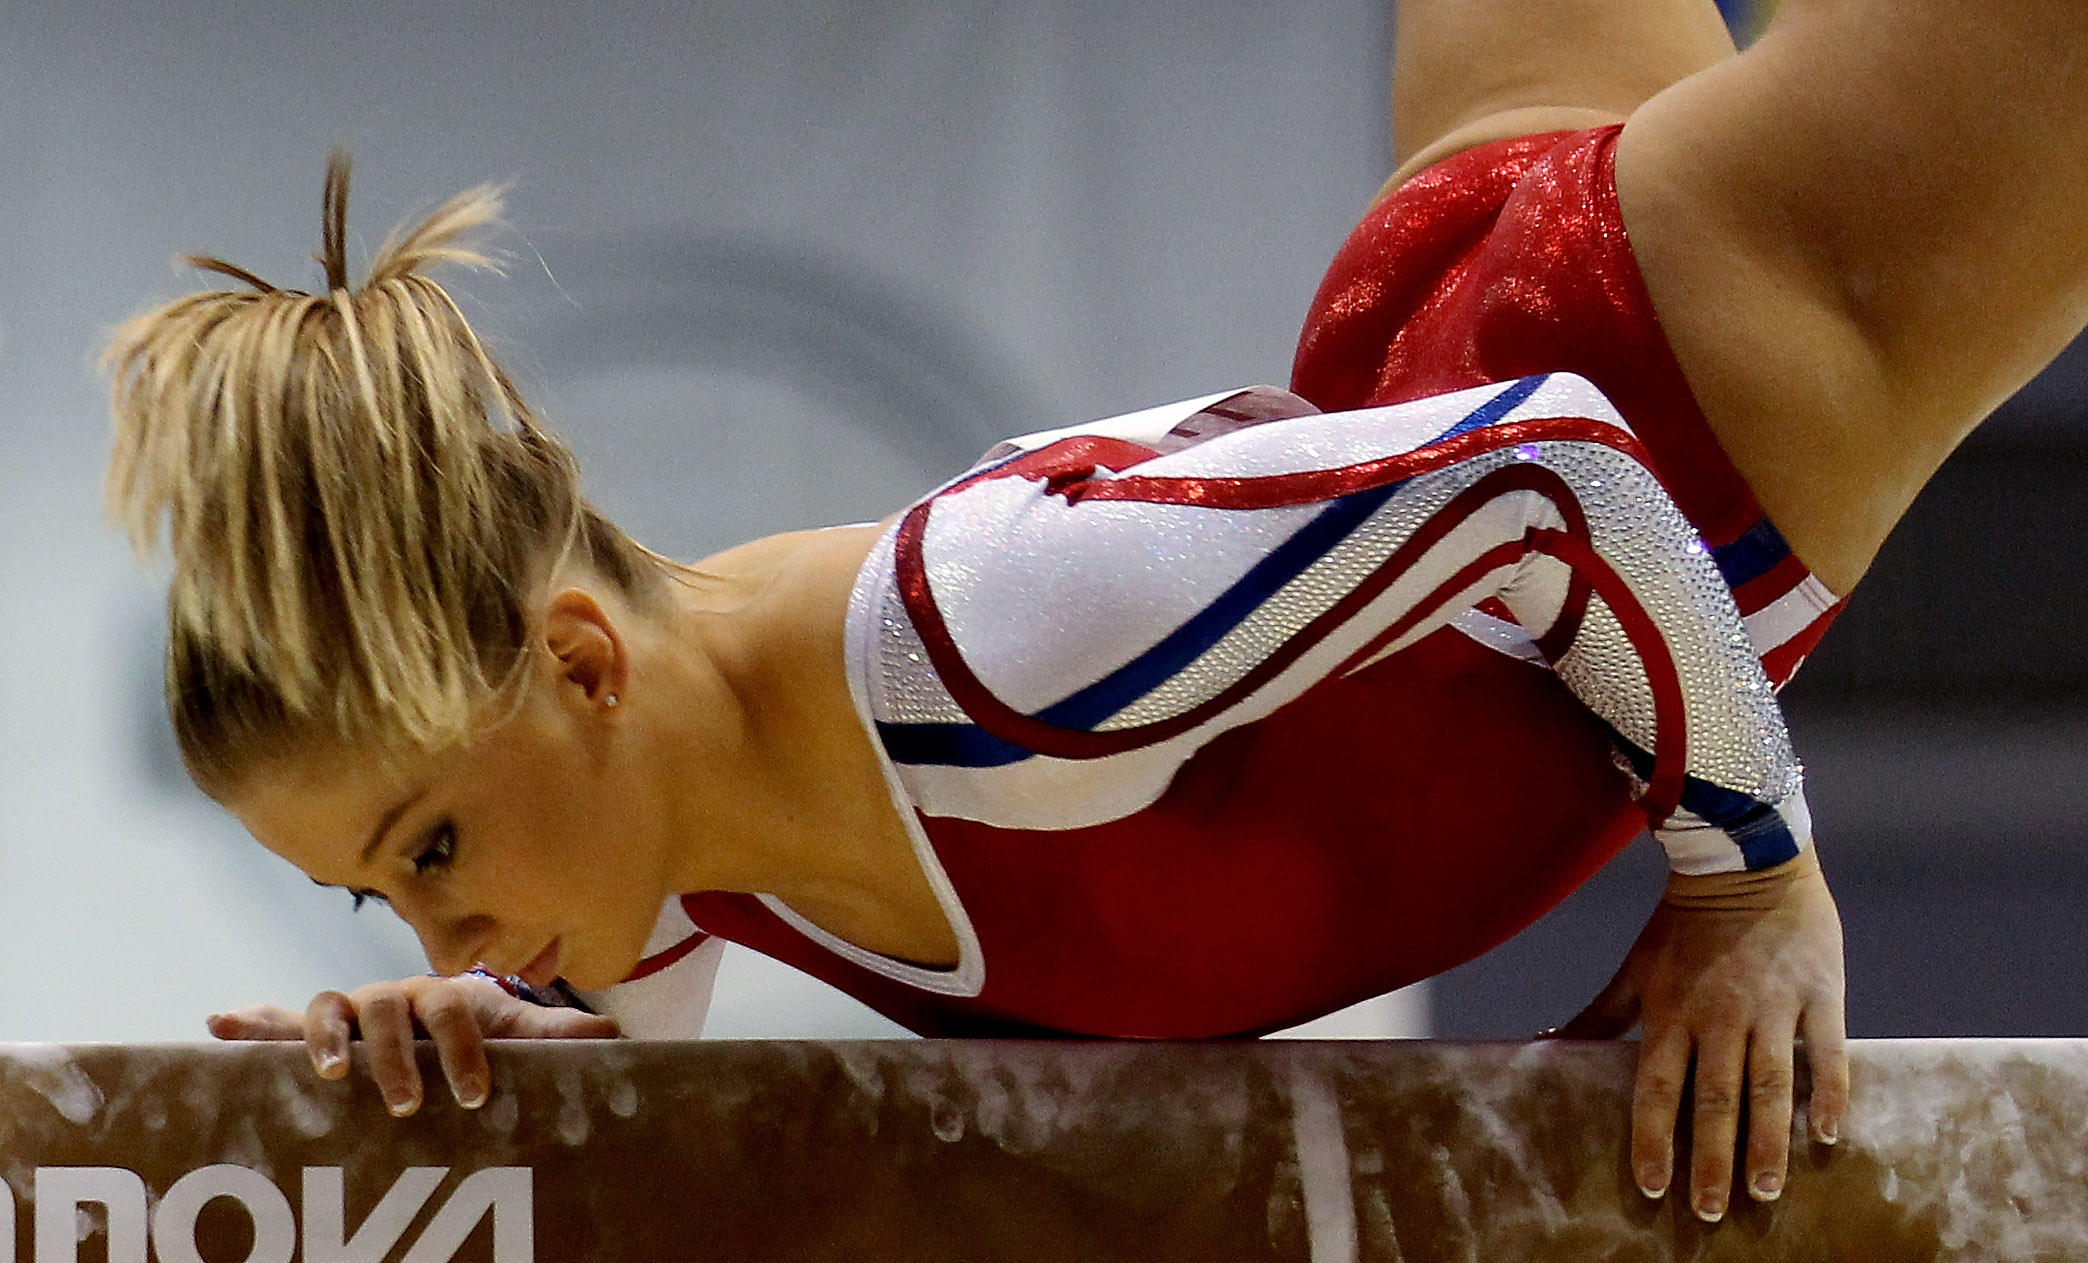 Can suggest olympic gymnast shawn johnson ass